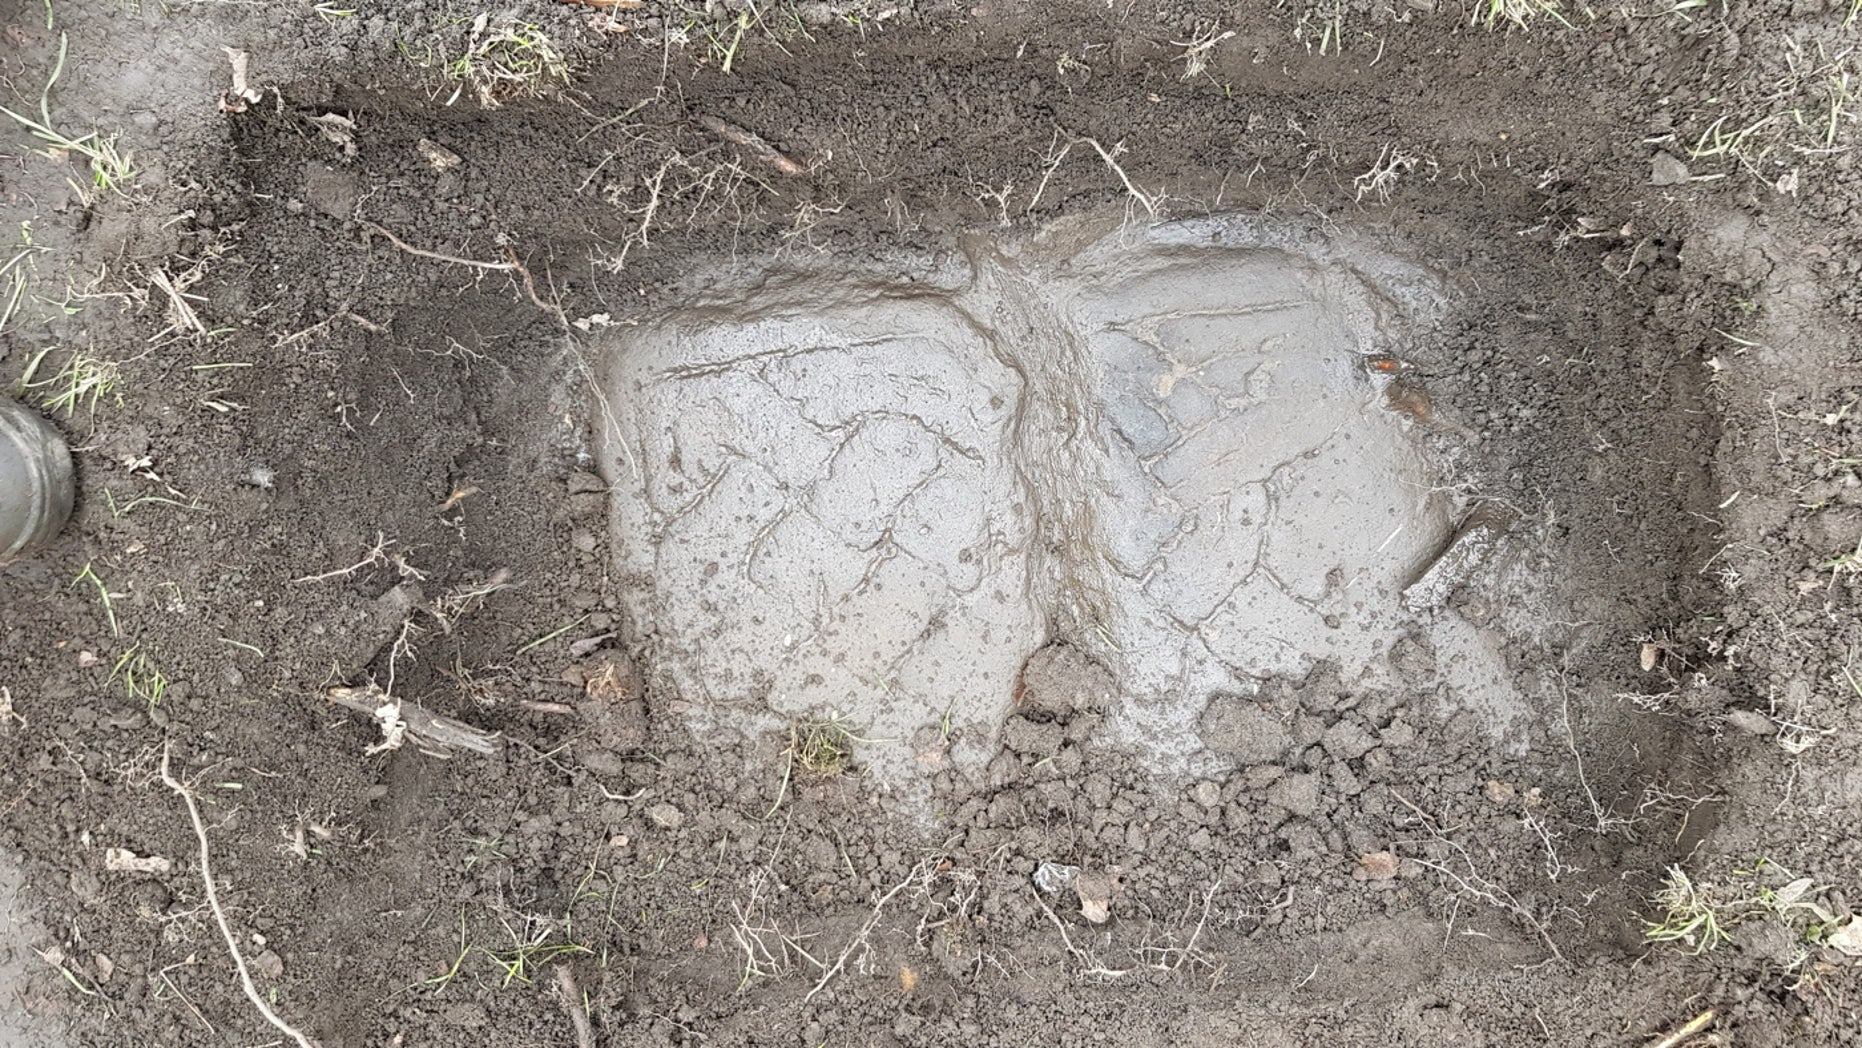 A Govan Stone emerges from the dirt.